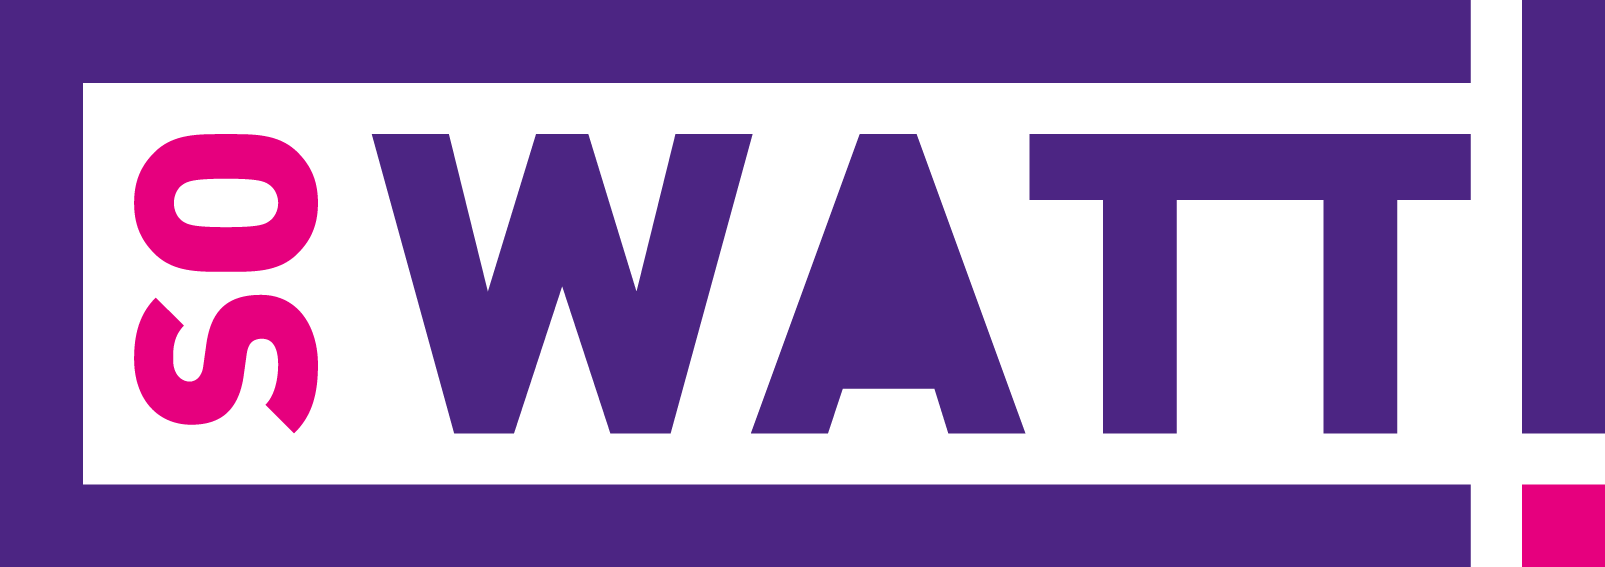 SO_WATT.png